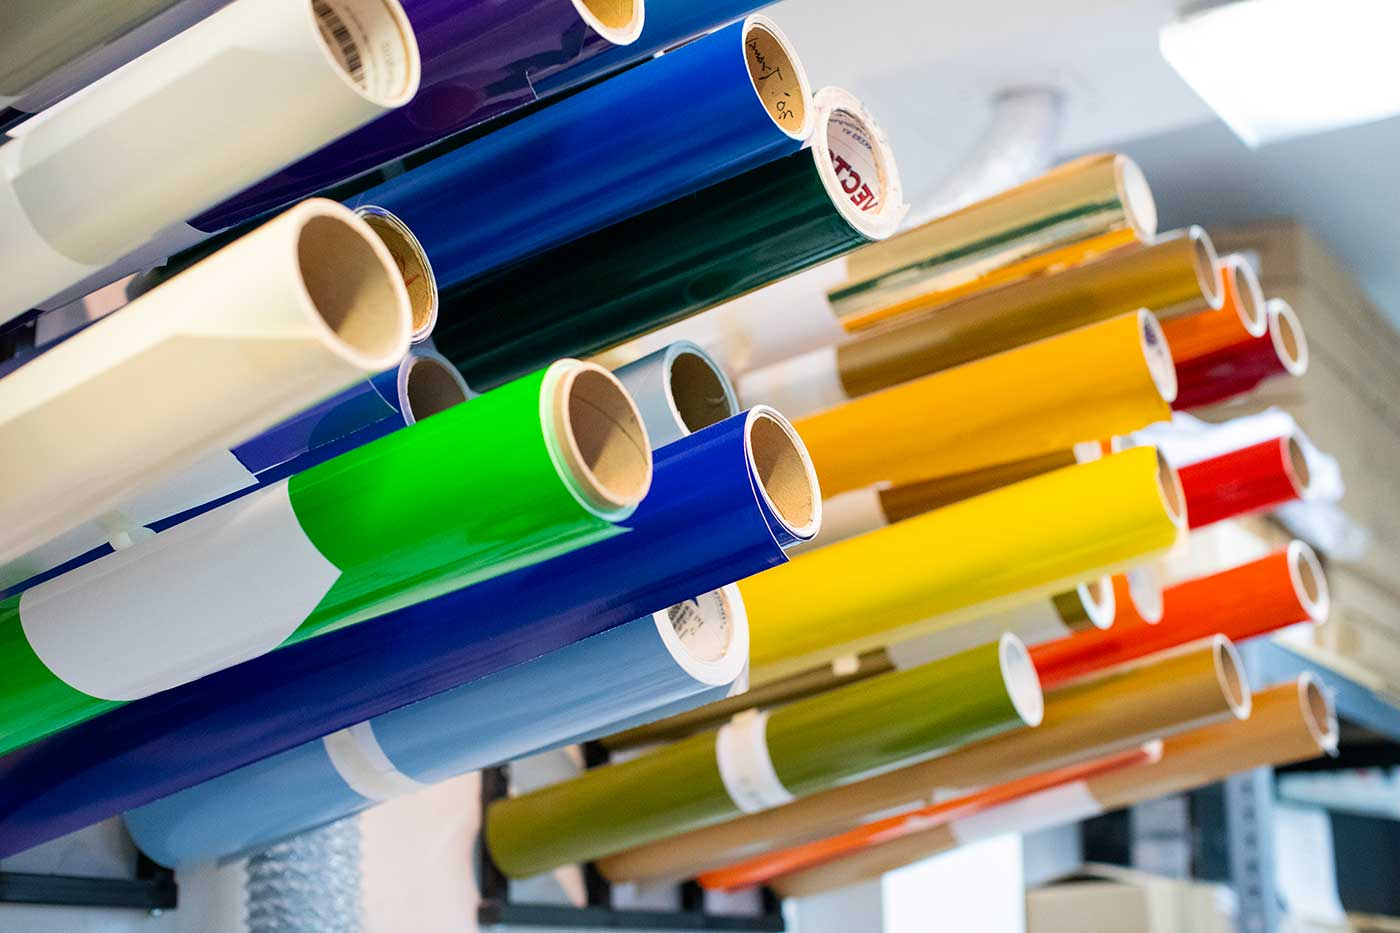 We use state-of-the-art equipment to produce high quality digital printing